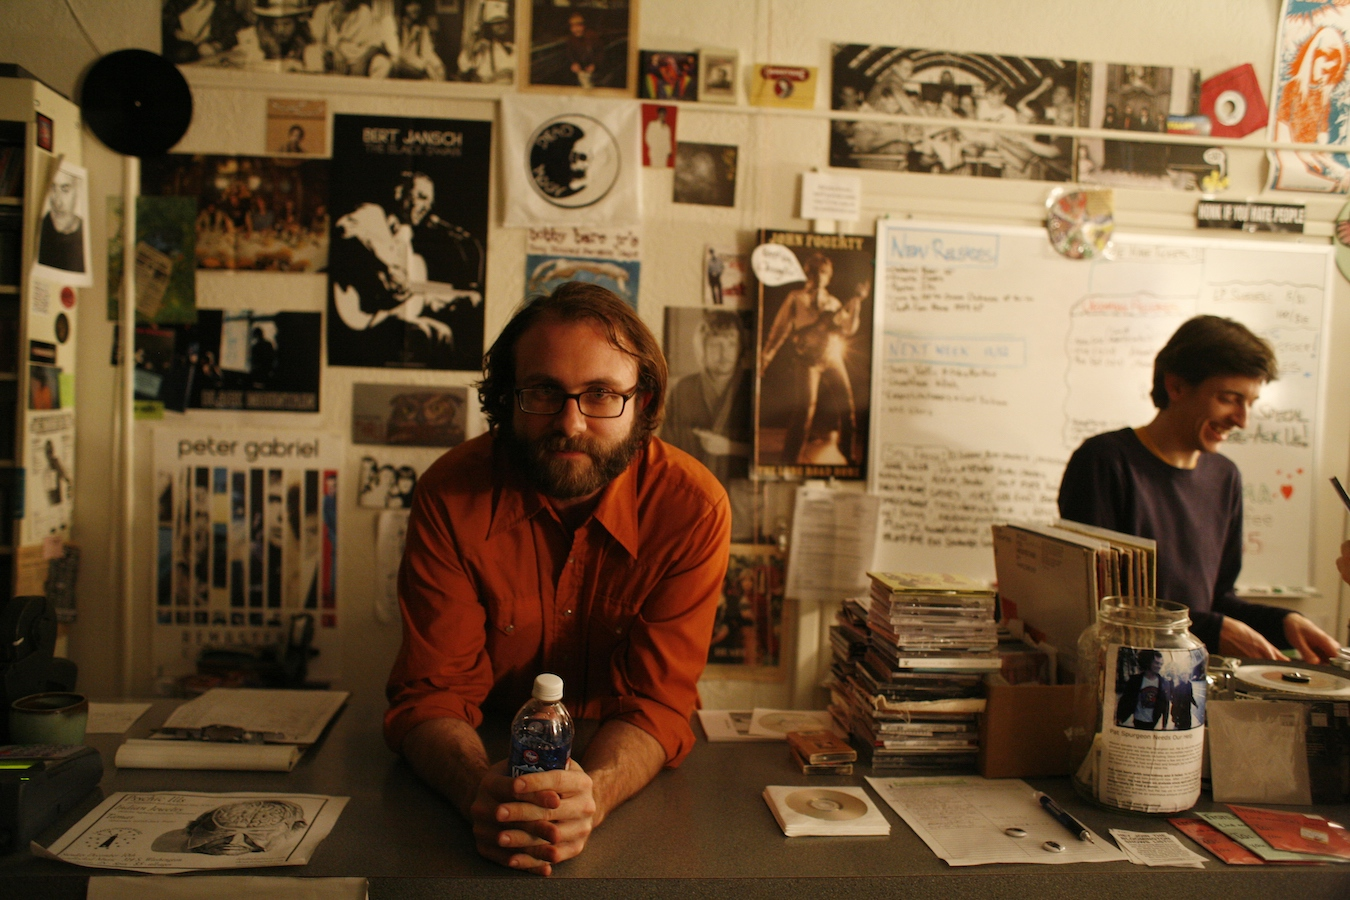 Landlocked Music co-owners Heath Byers (left) and Jason Nickey at their first store in 2006. | Photo by Jeremy Hogan